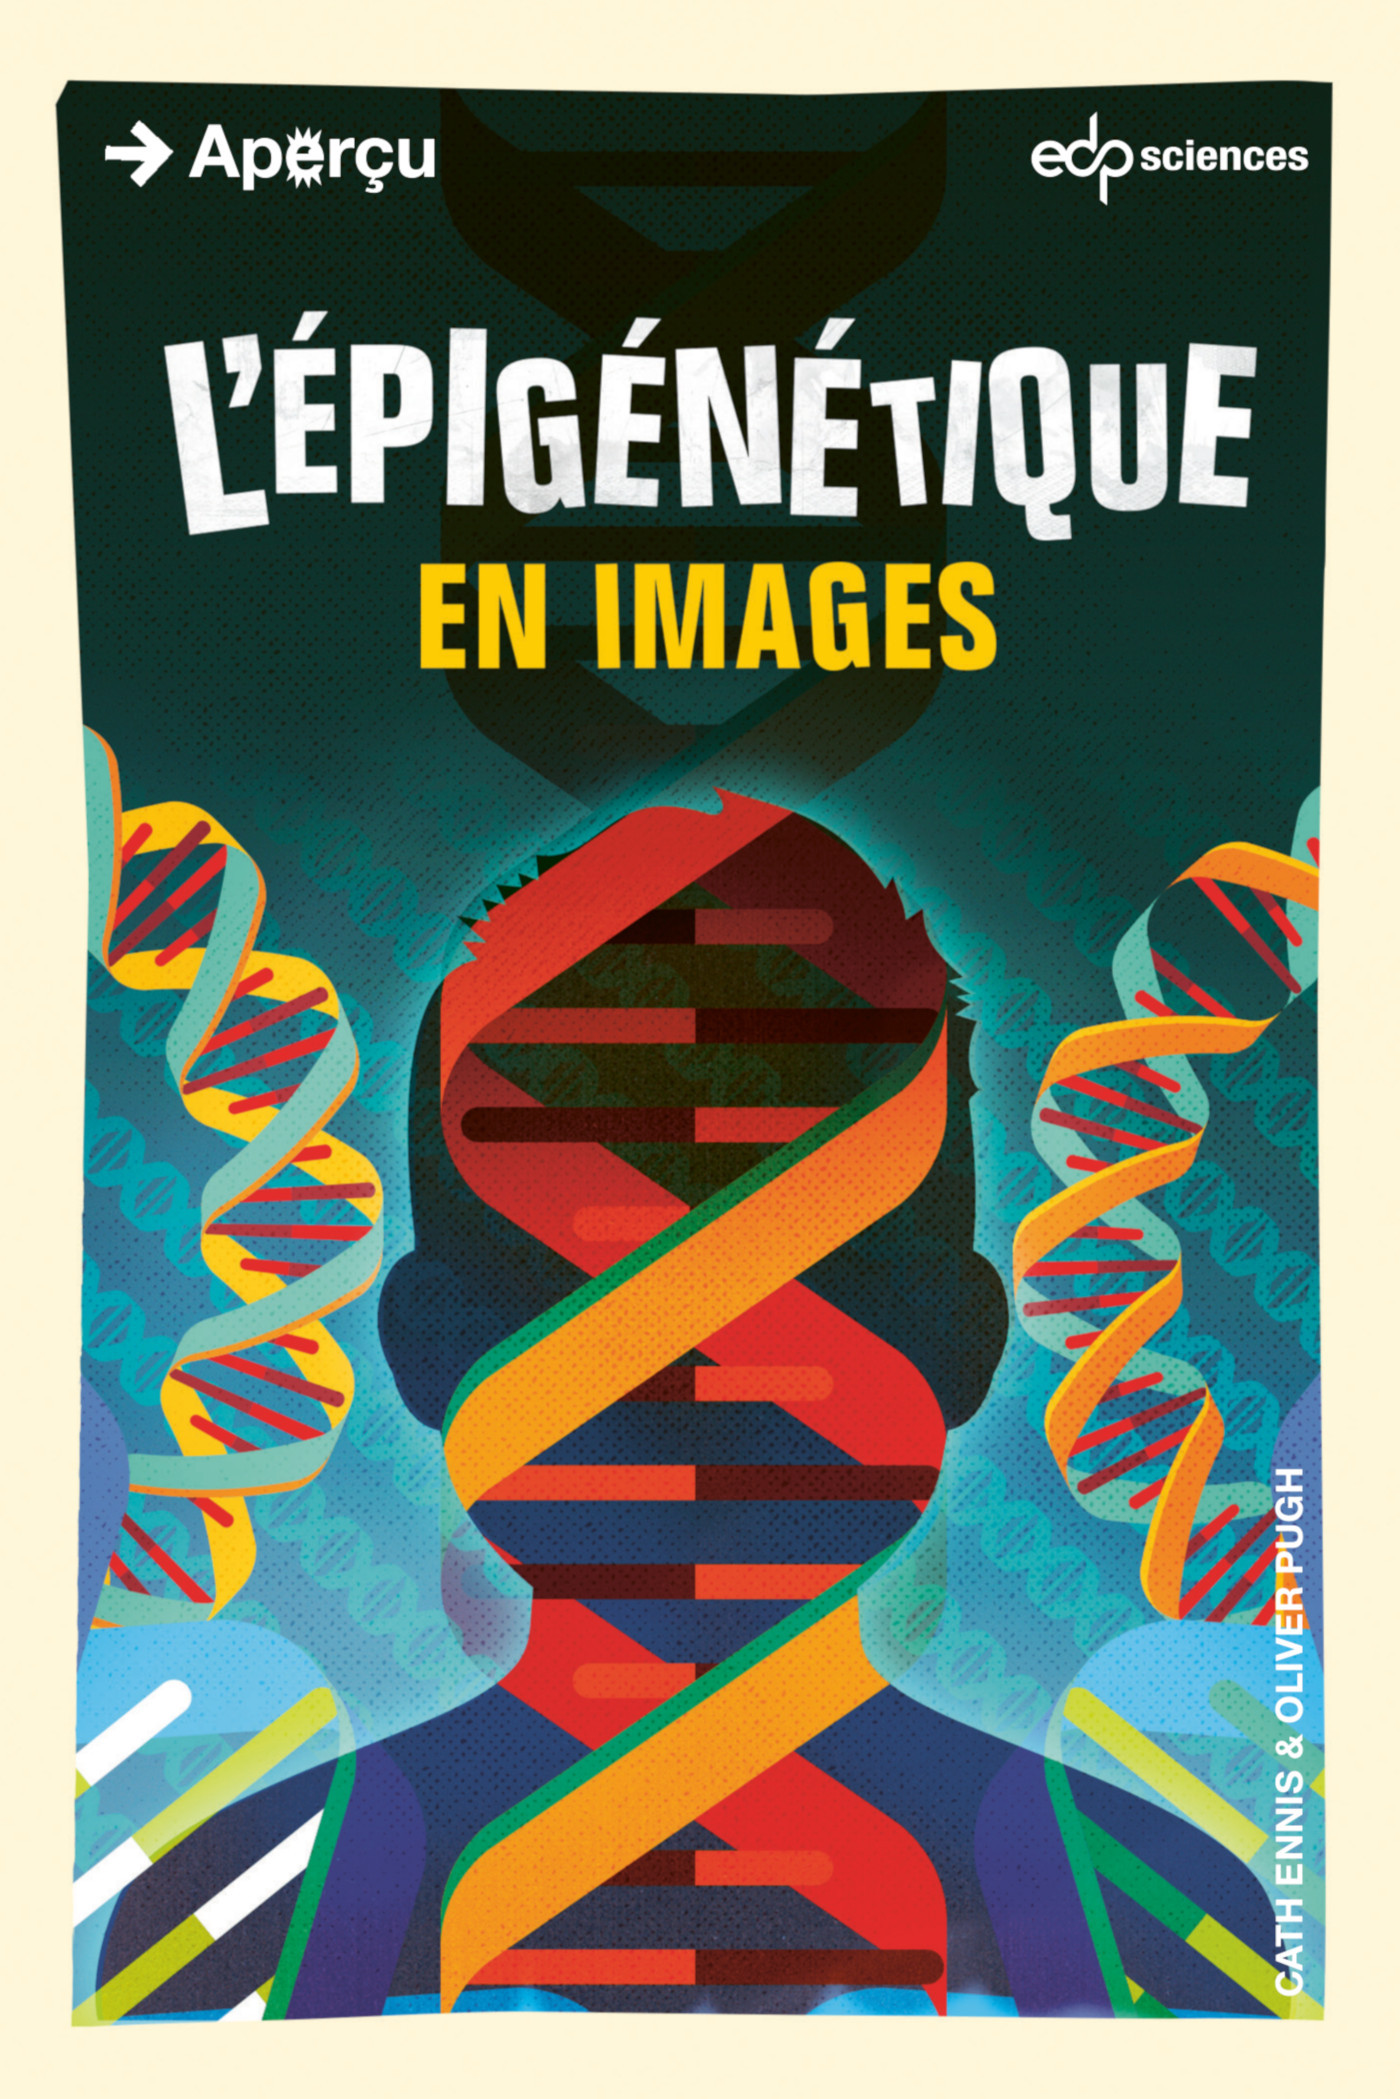 L'EPIGENETIQUE EN IMAGES